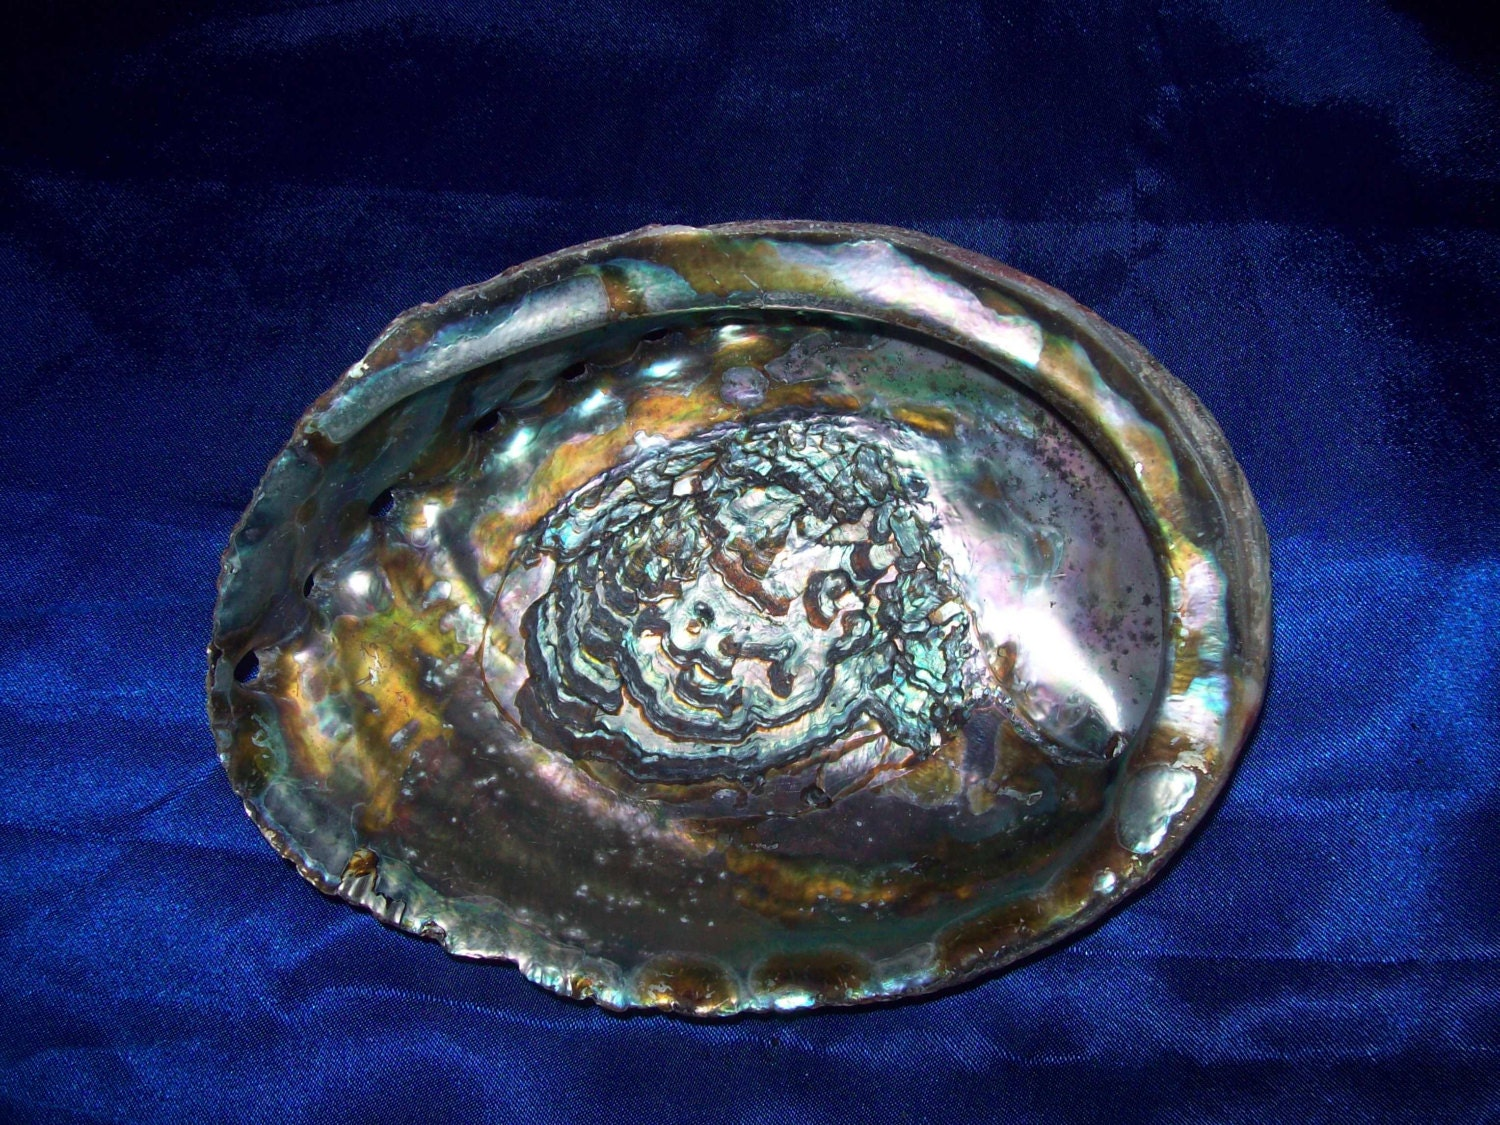 The Giant Abalone Shell from an Old Collection